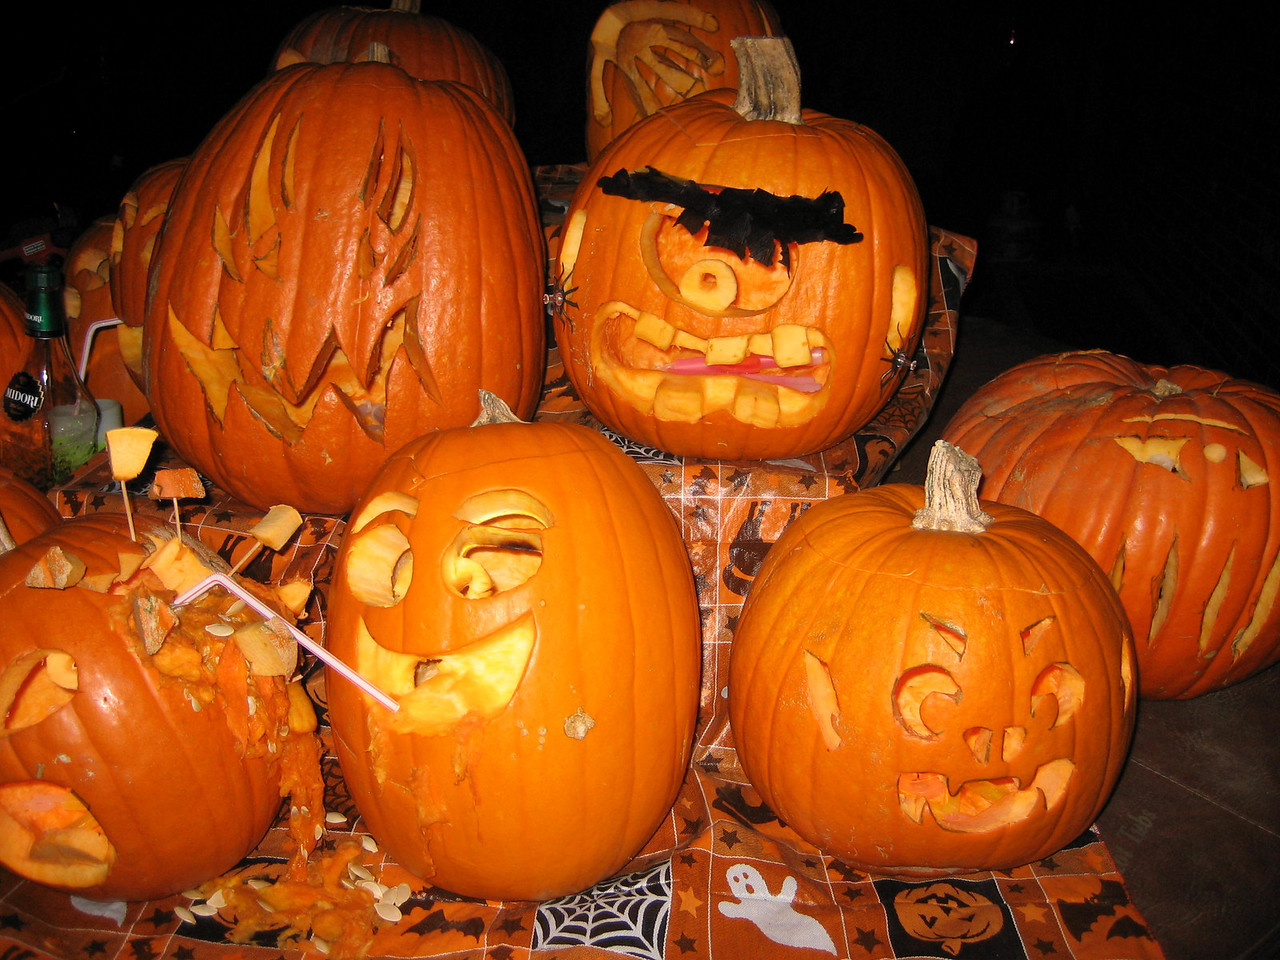 Unibrow and other pumpkins